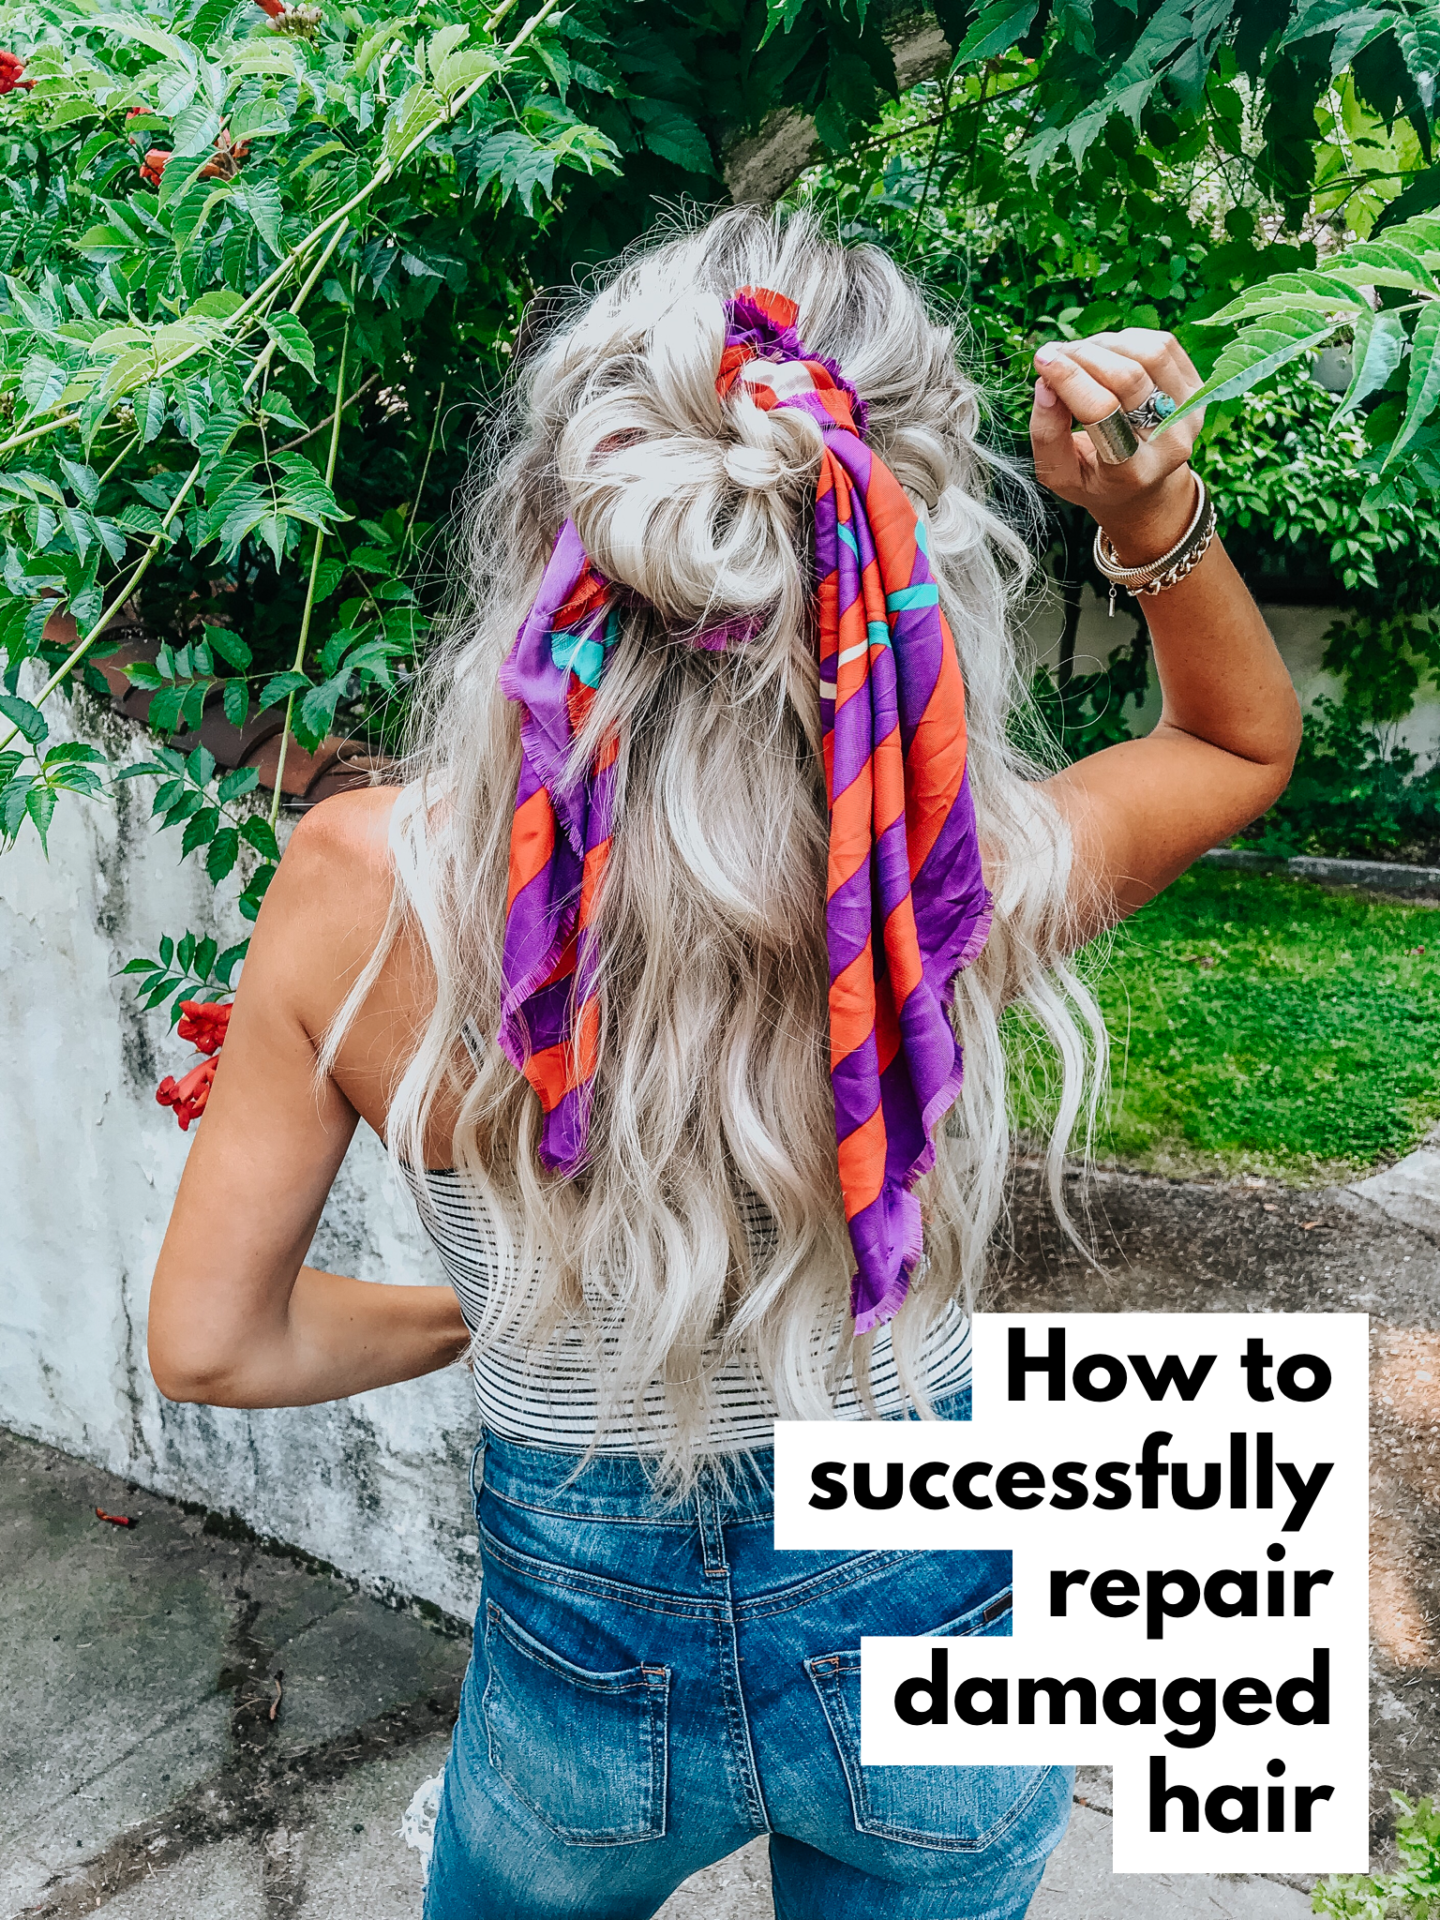 How to Successfully Repair Damaged Hair